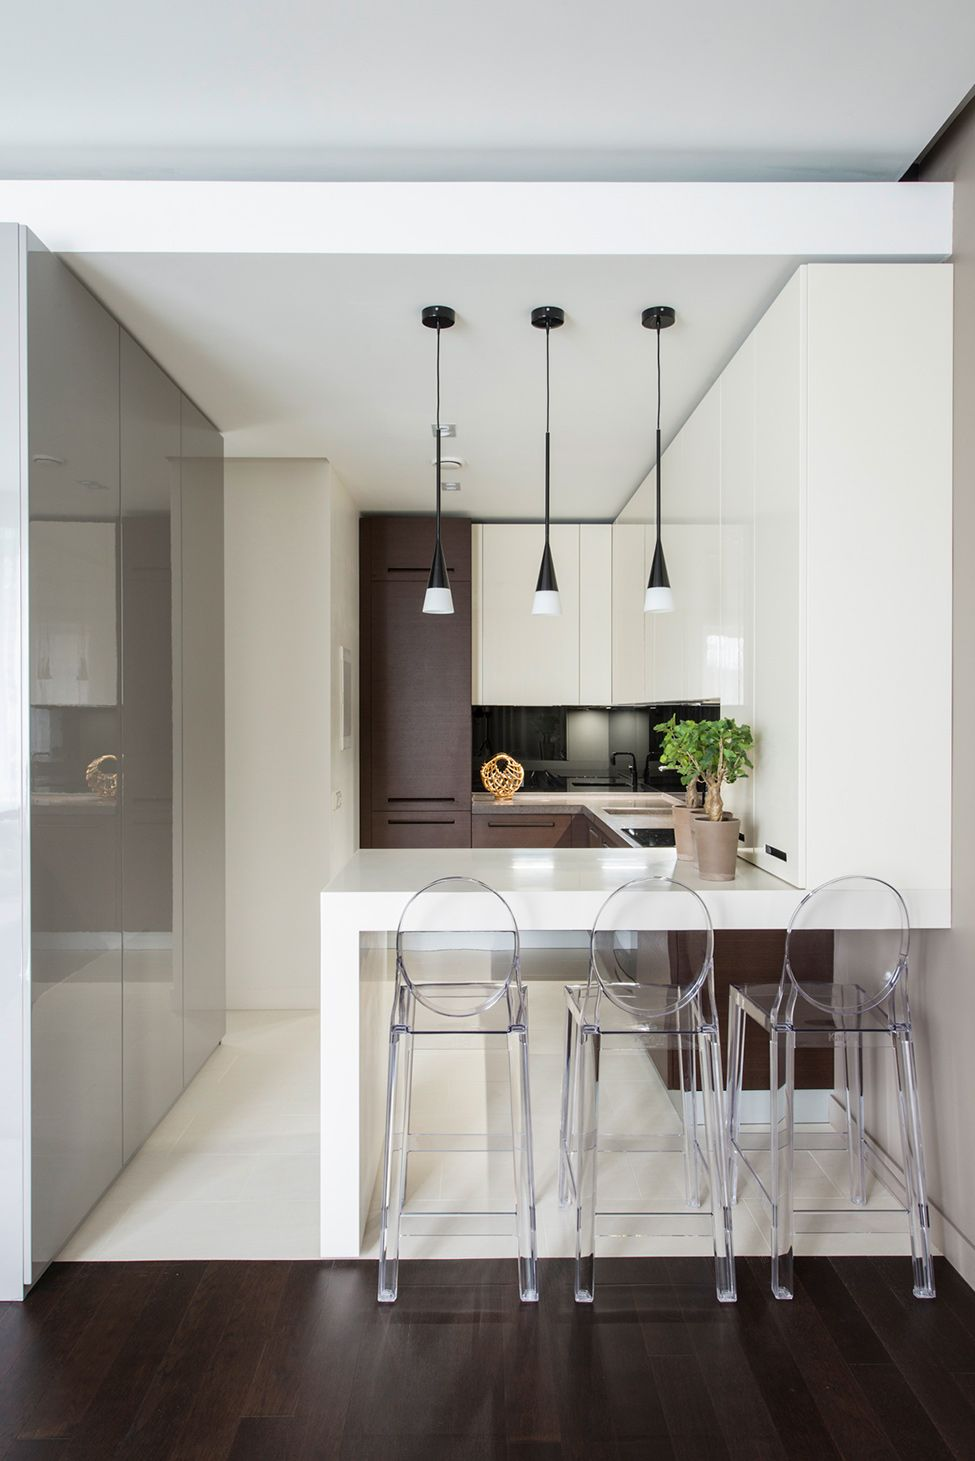 10 Small Kitchen Decorating Ideas With Contemporary Style Aida Homes Minimalist Kitchen Design White Kitchen Interior Design Kitchen Bar Design